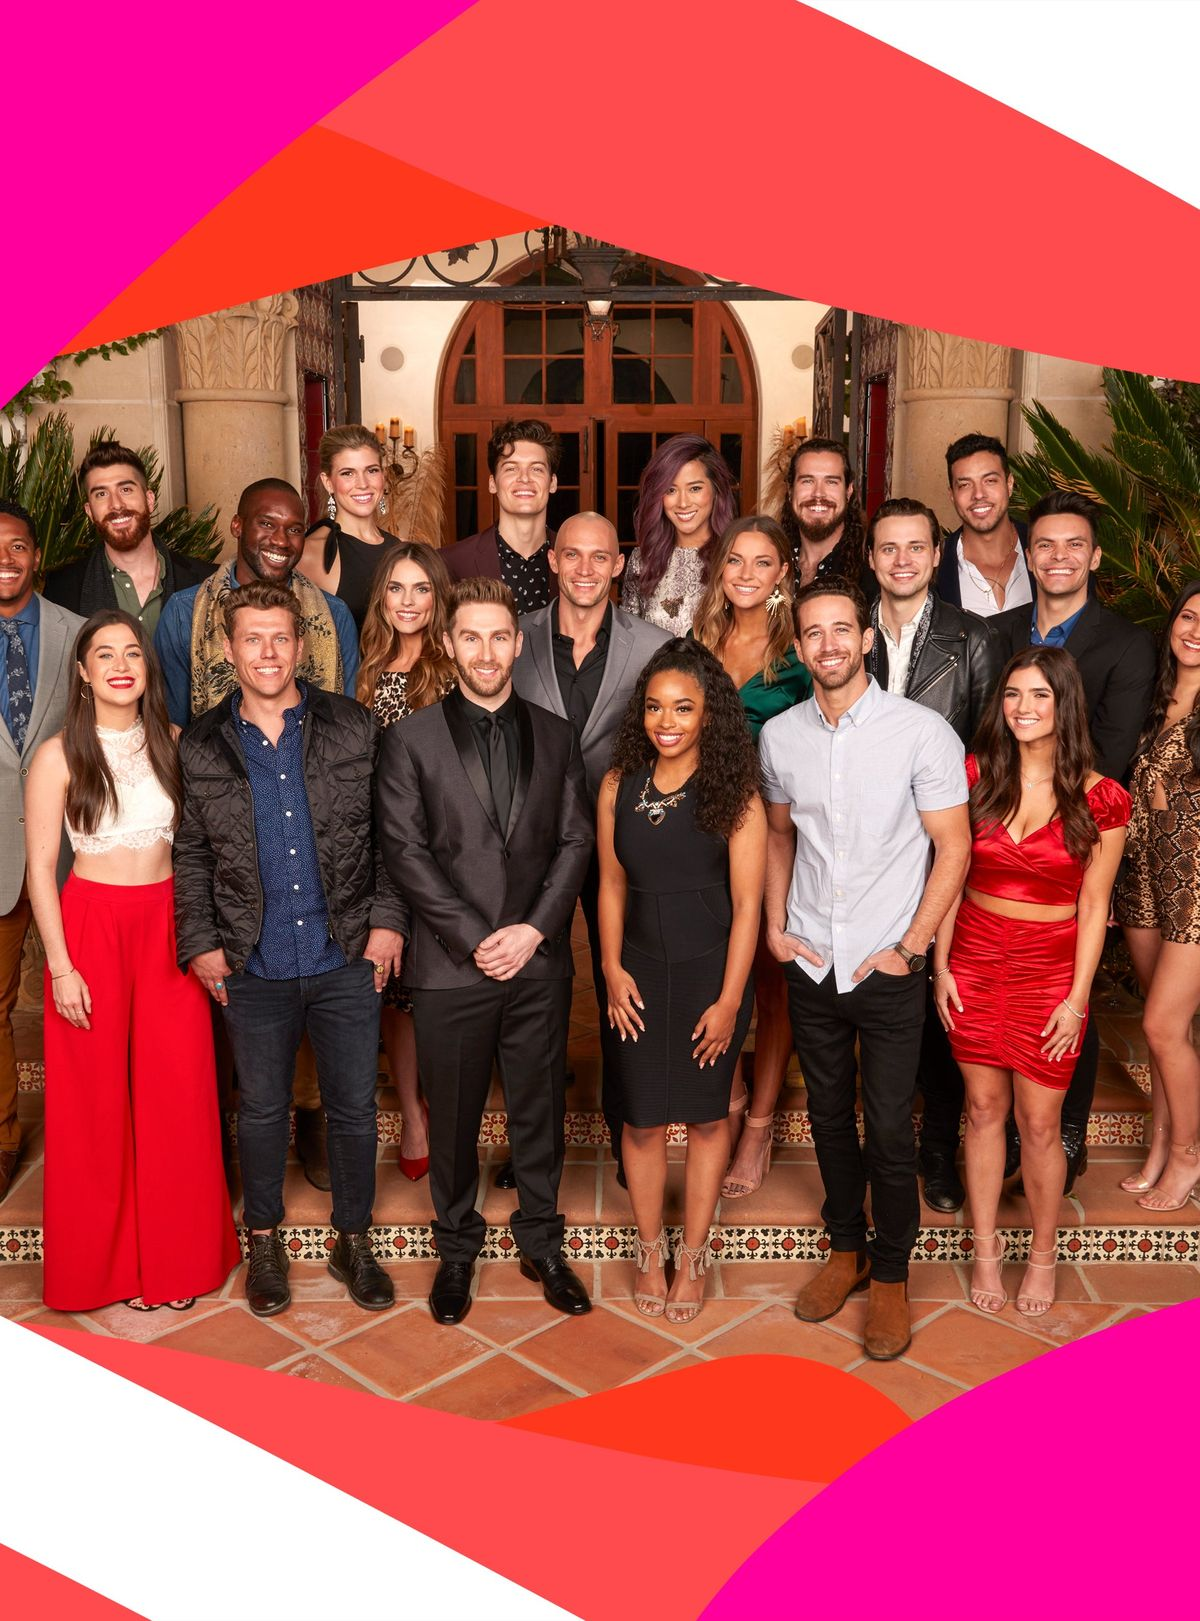 Meet The Brave Cast Of Bachelor's New Musical Dating Show